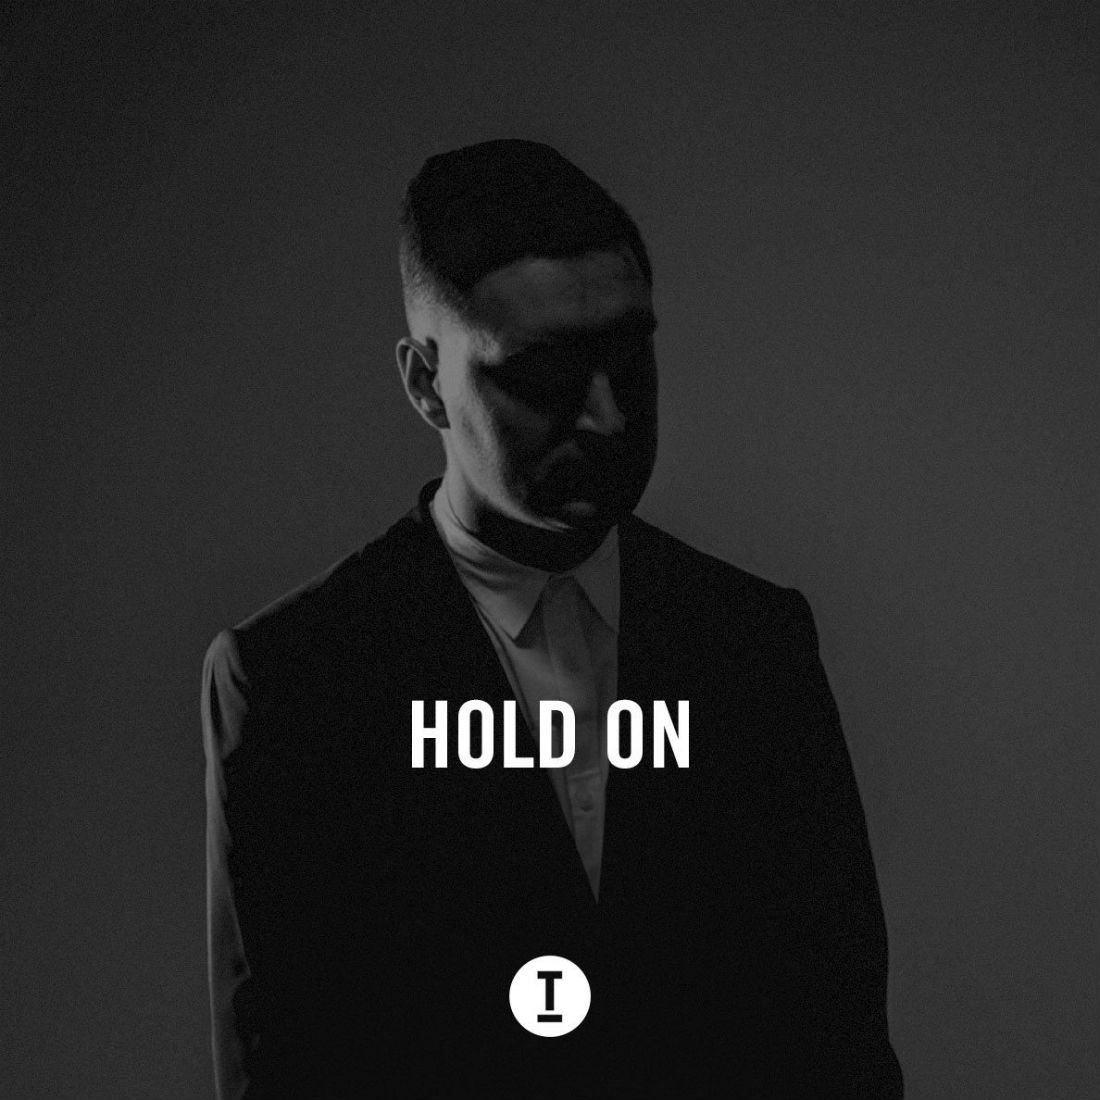 Amtrac - Holding On